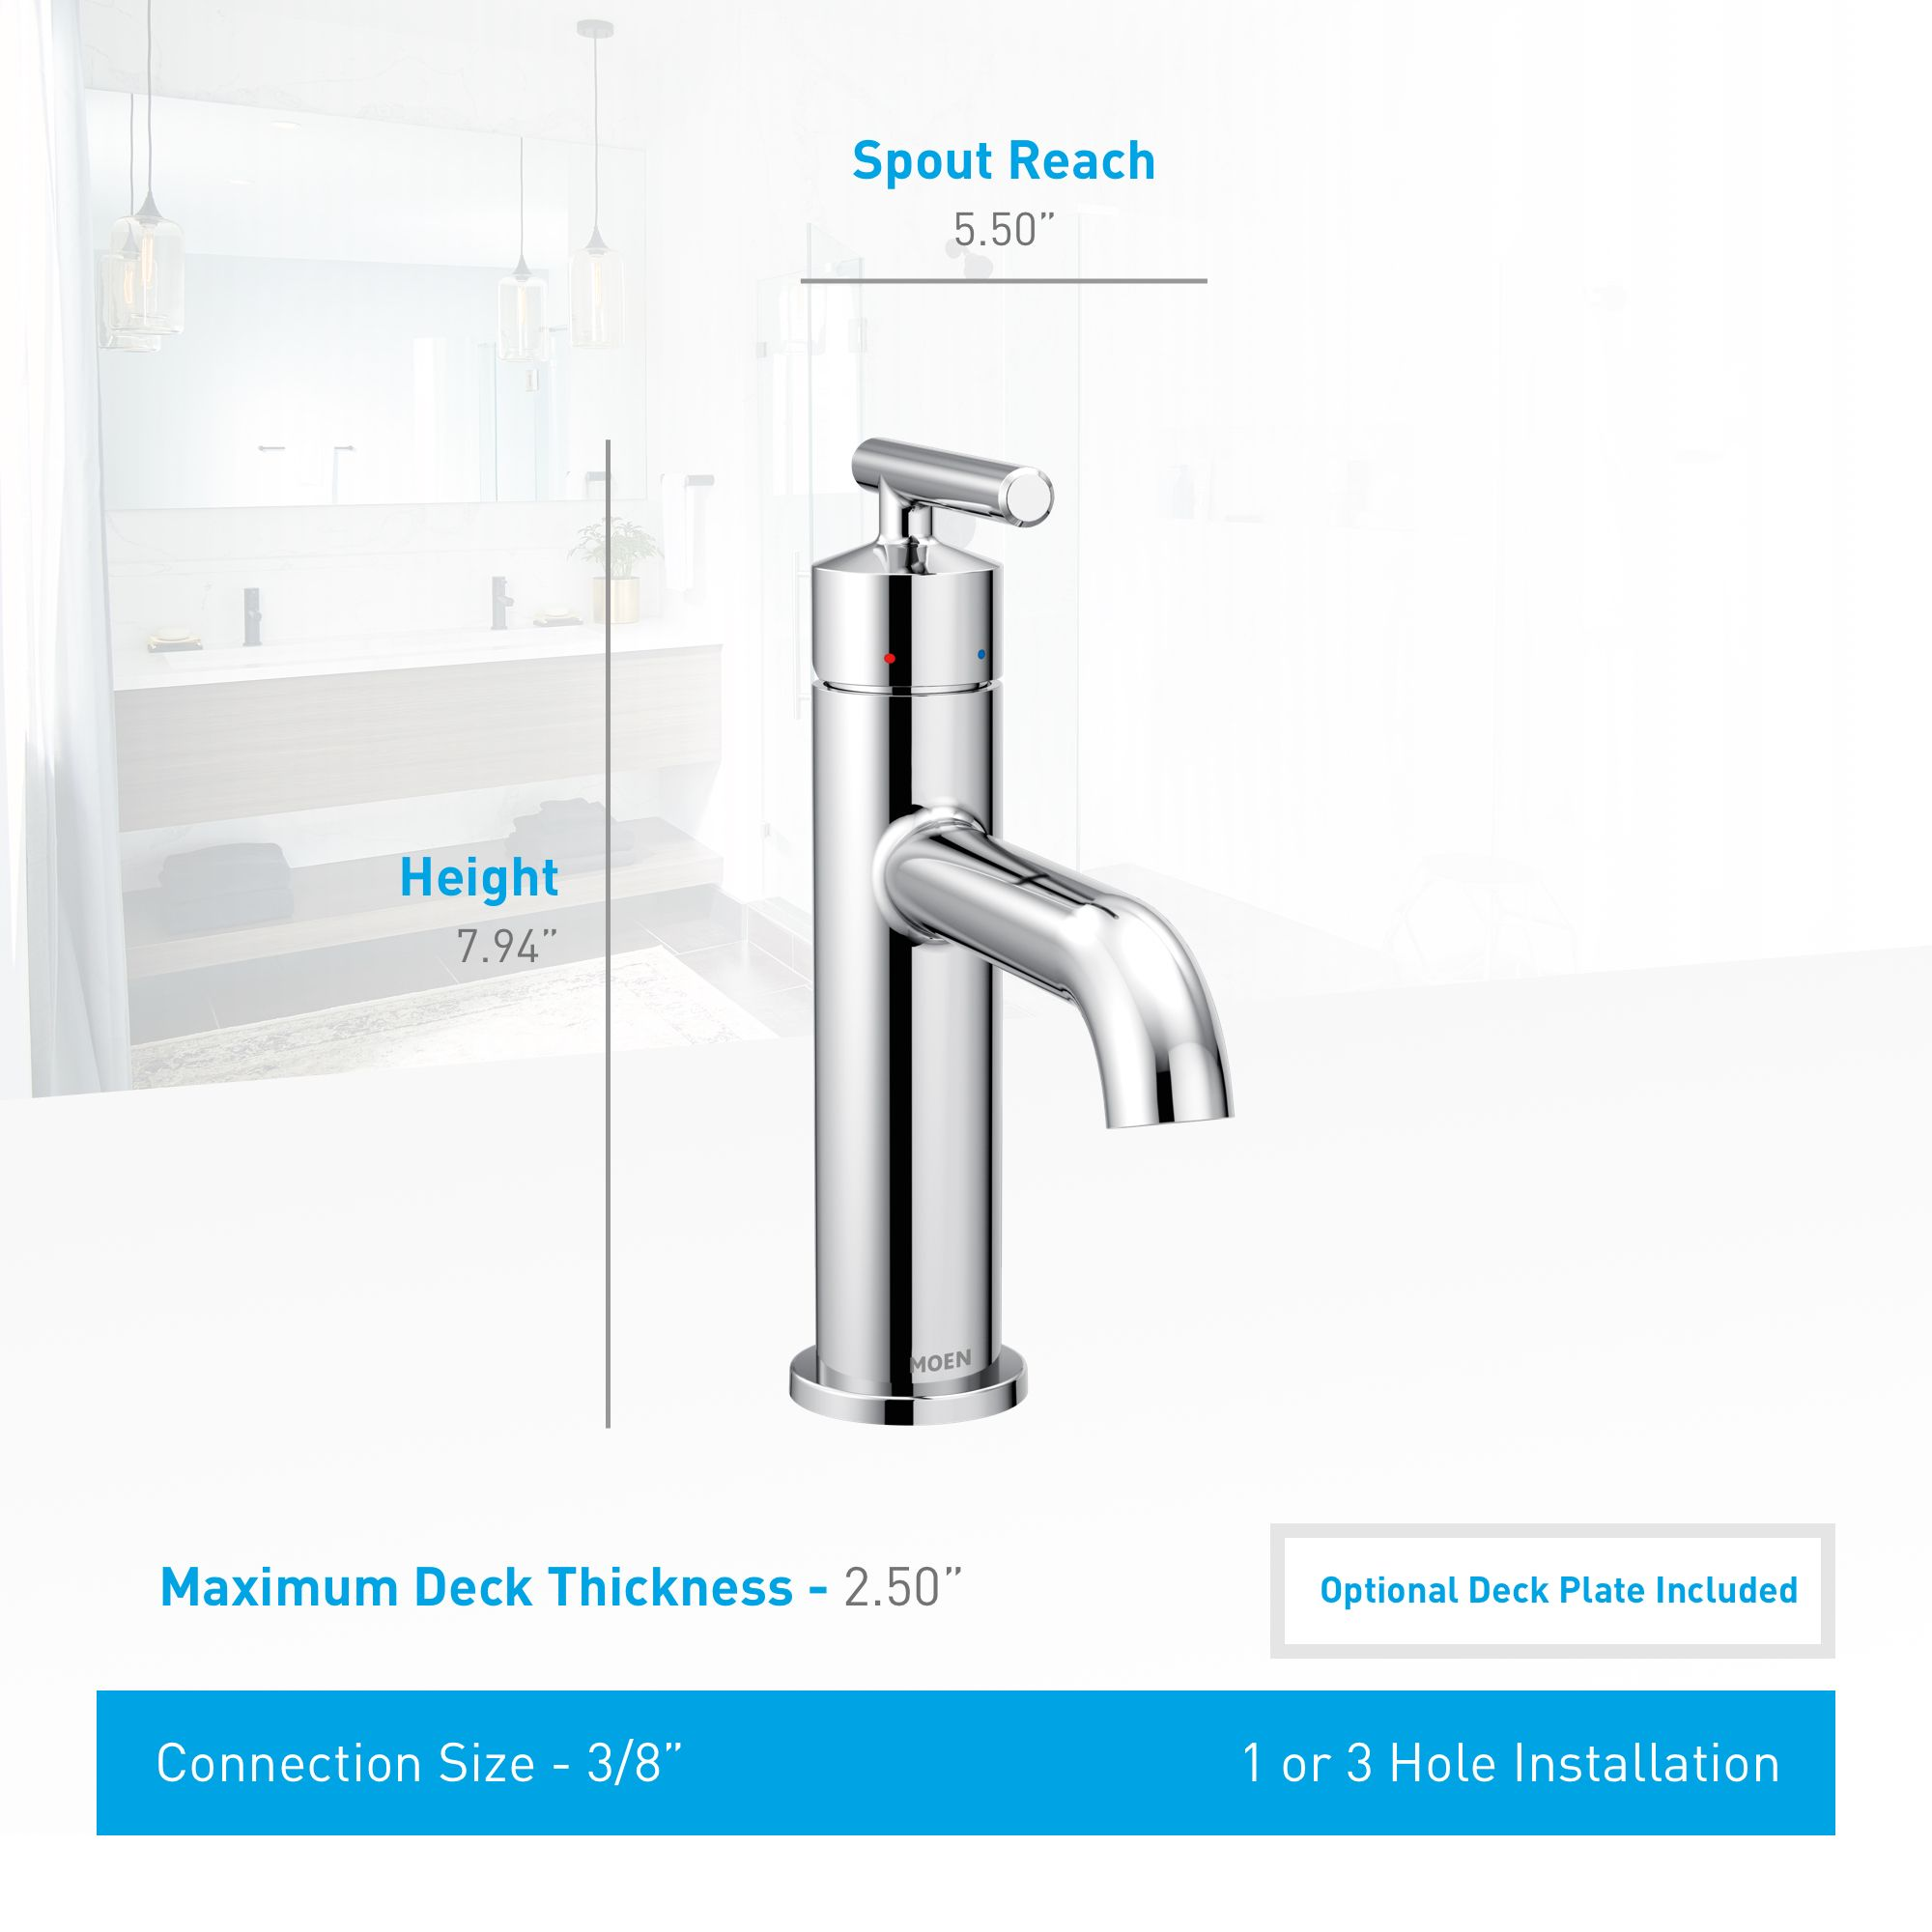 Moen 6145 Chrome Gibson 1 2 Gpm Single Hole Bathroom Sink Faucet With Pop Up Drain Assembly Bathroom Sink Faucets Single Hole Bathroom Sink Faucets Faucet Design [ 2000 x 2000 Pixel ]